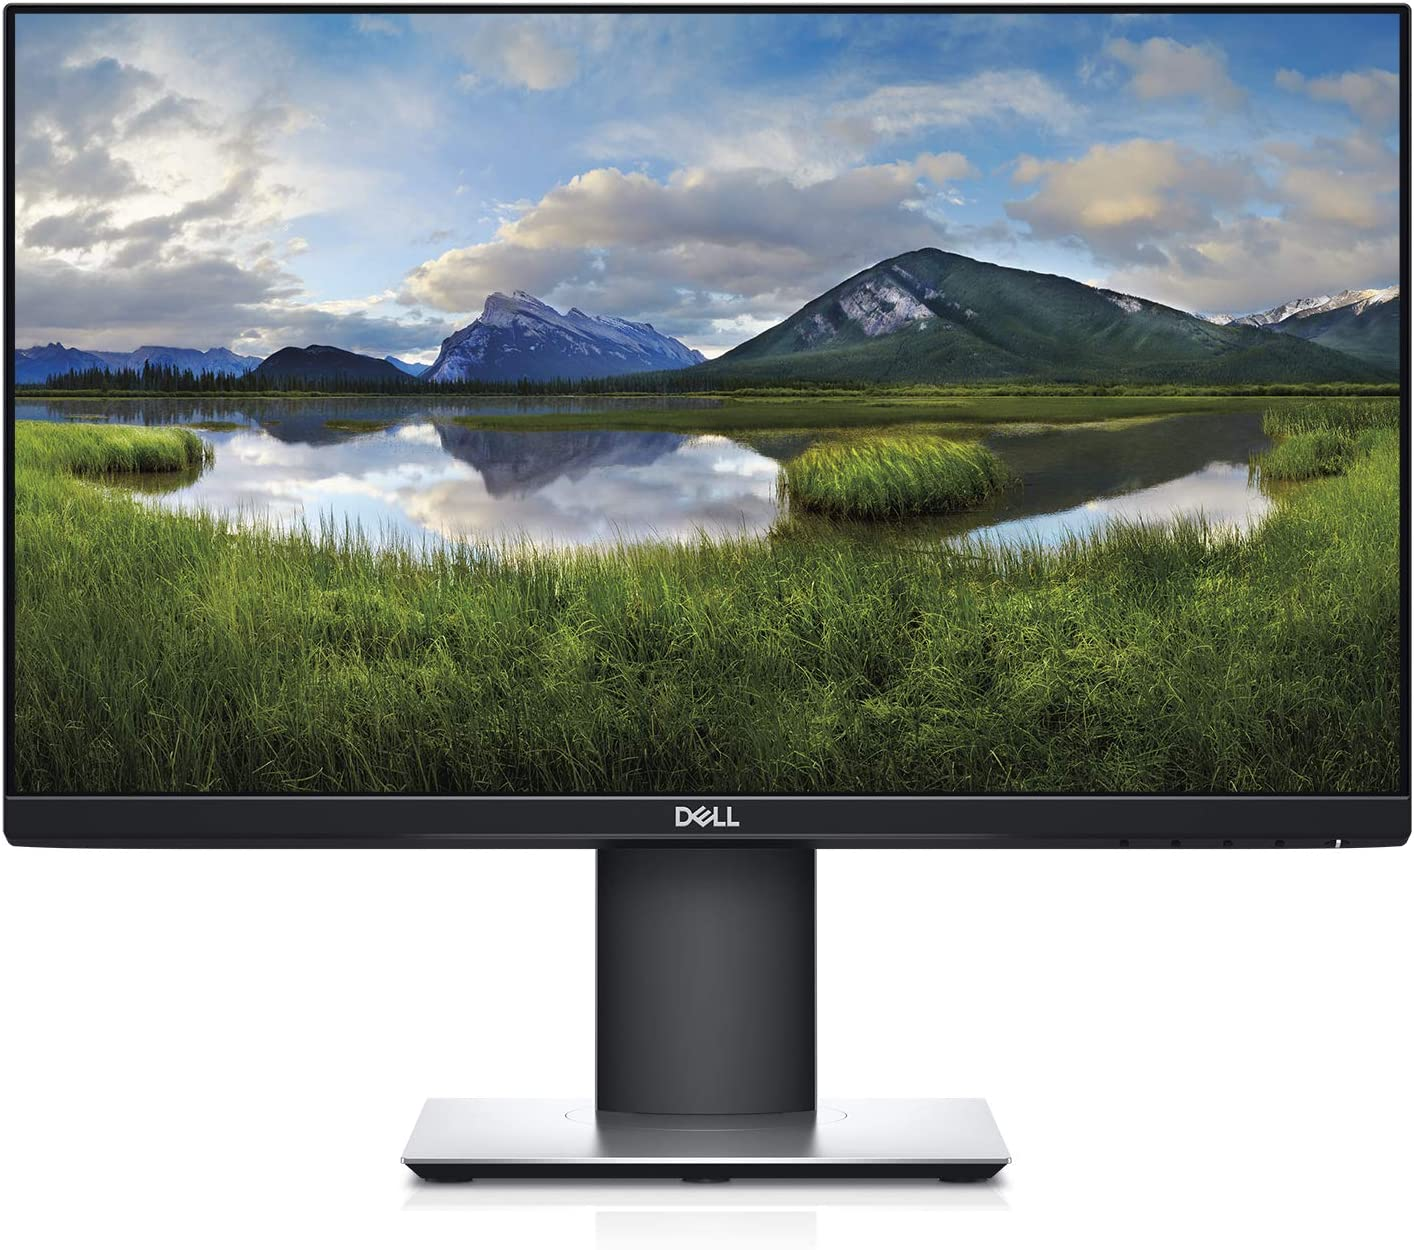 Dell P2719H Vertical Monitor